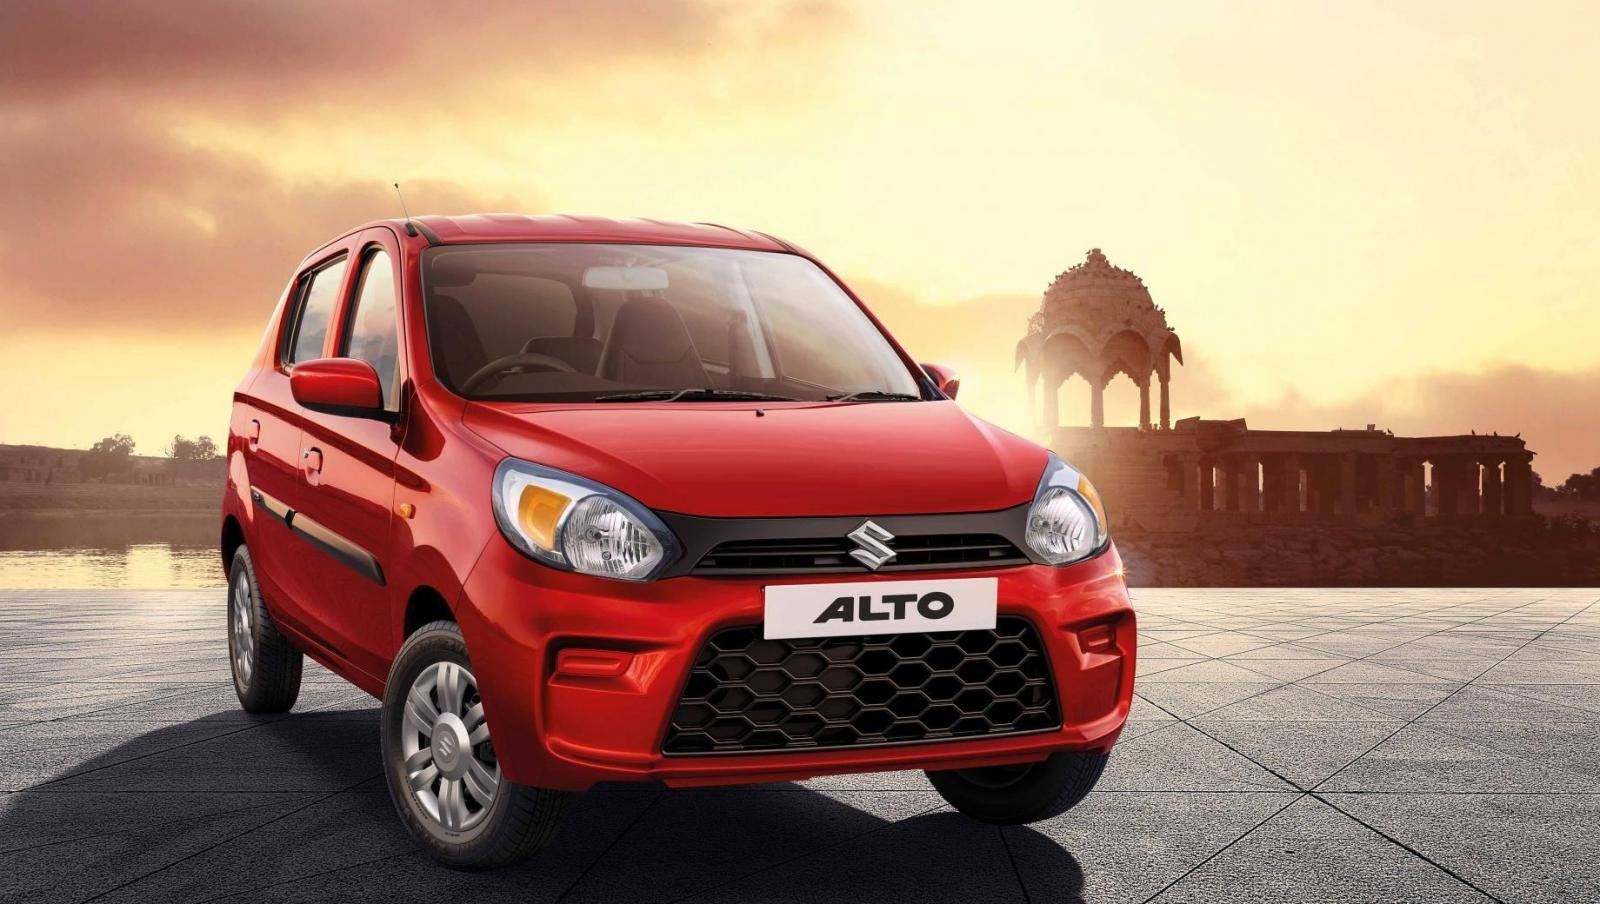 Maruti Alto is the best selling car in India